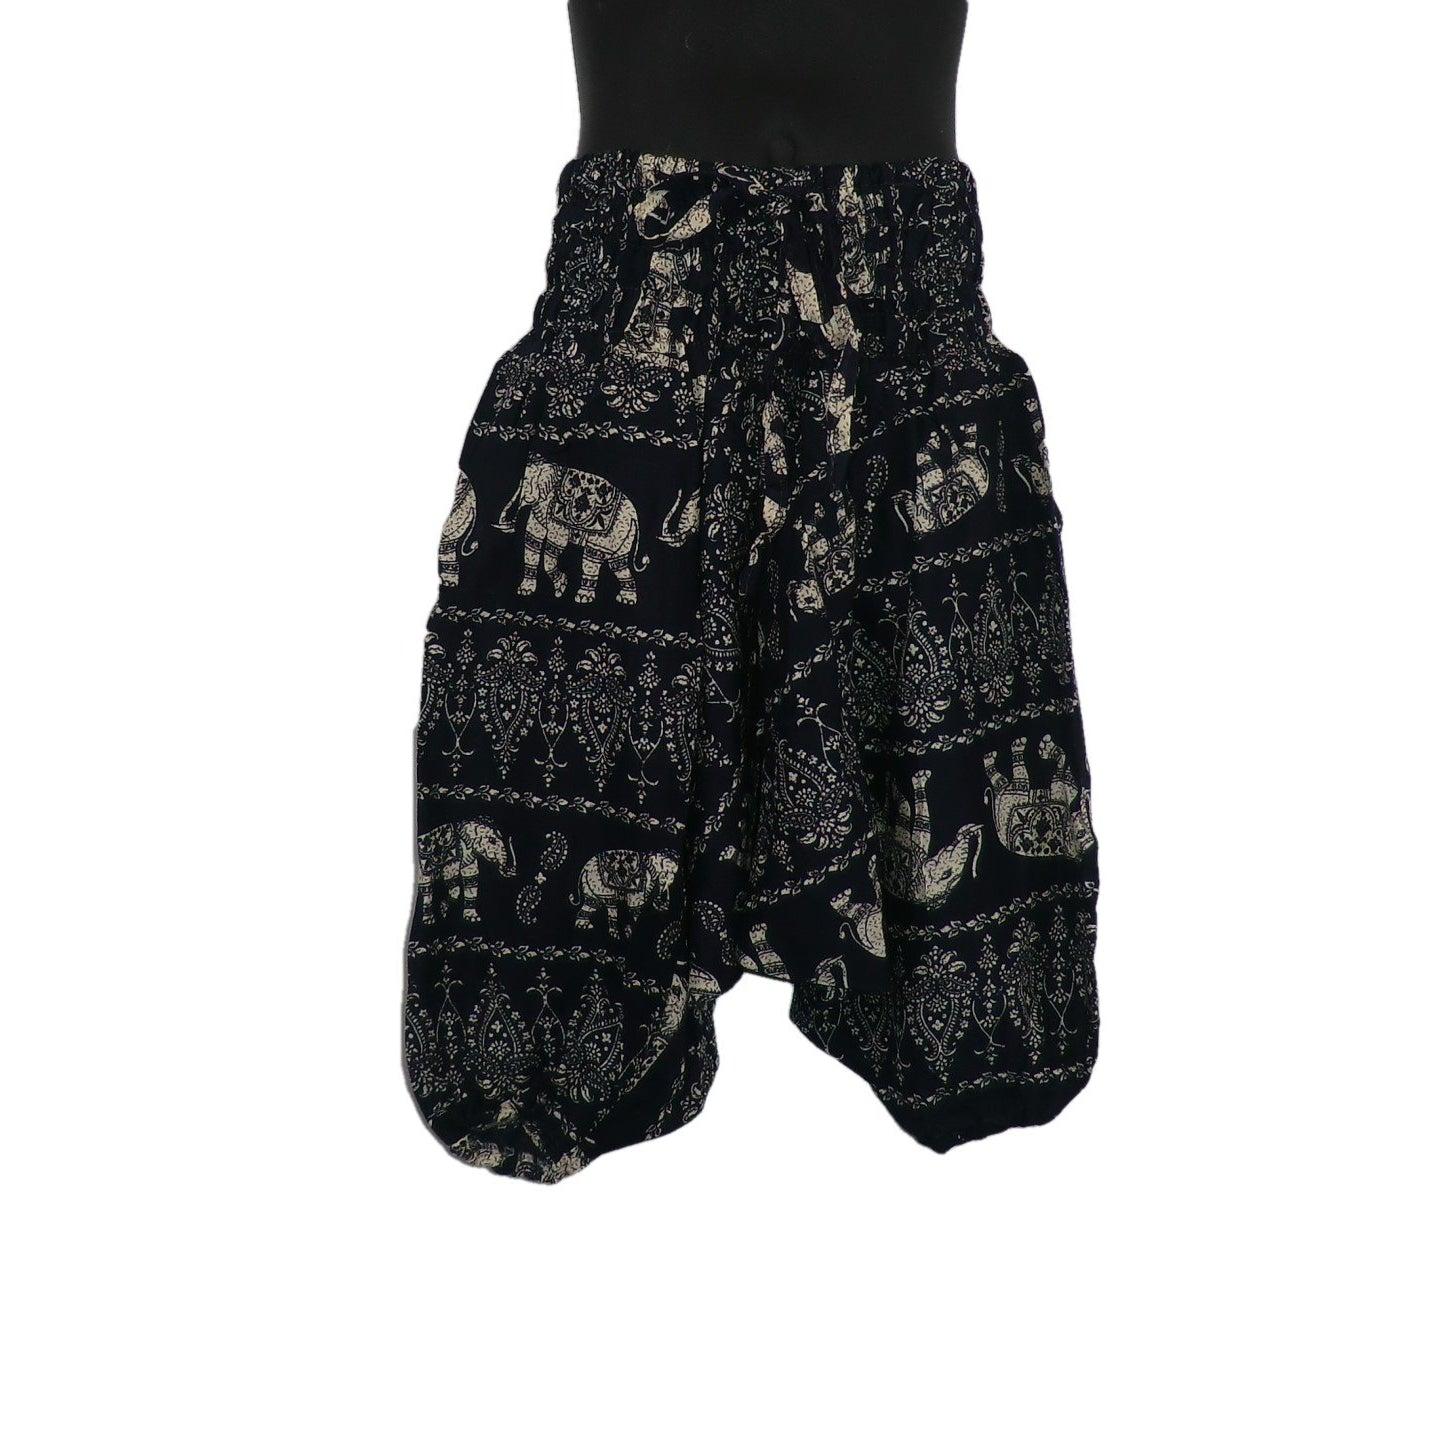 Blue Harem Pants 3 - 5yrs - Matico